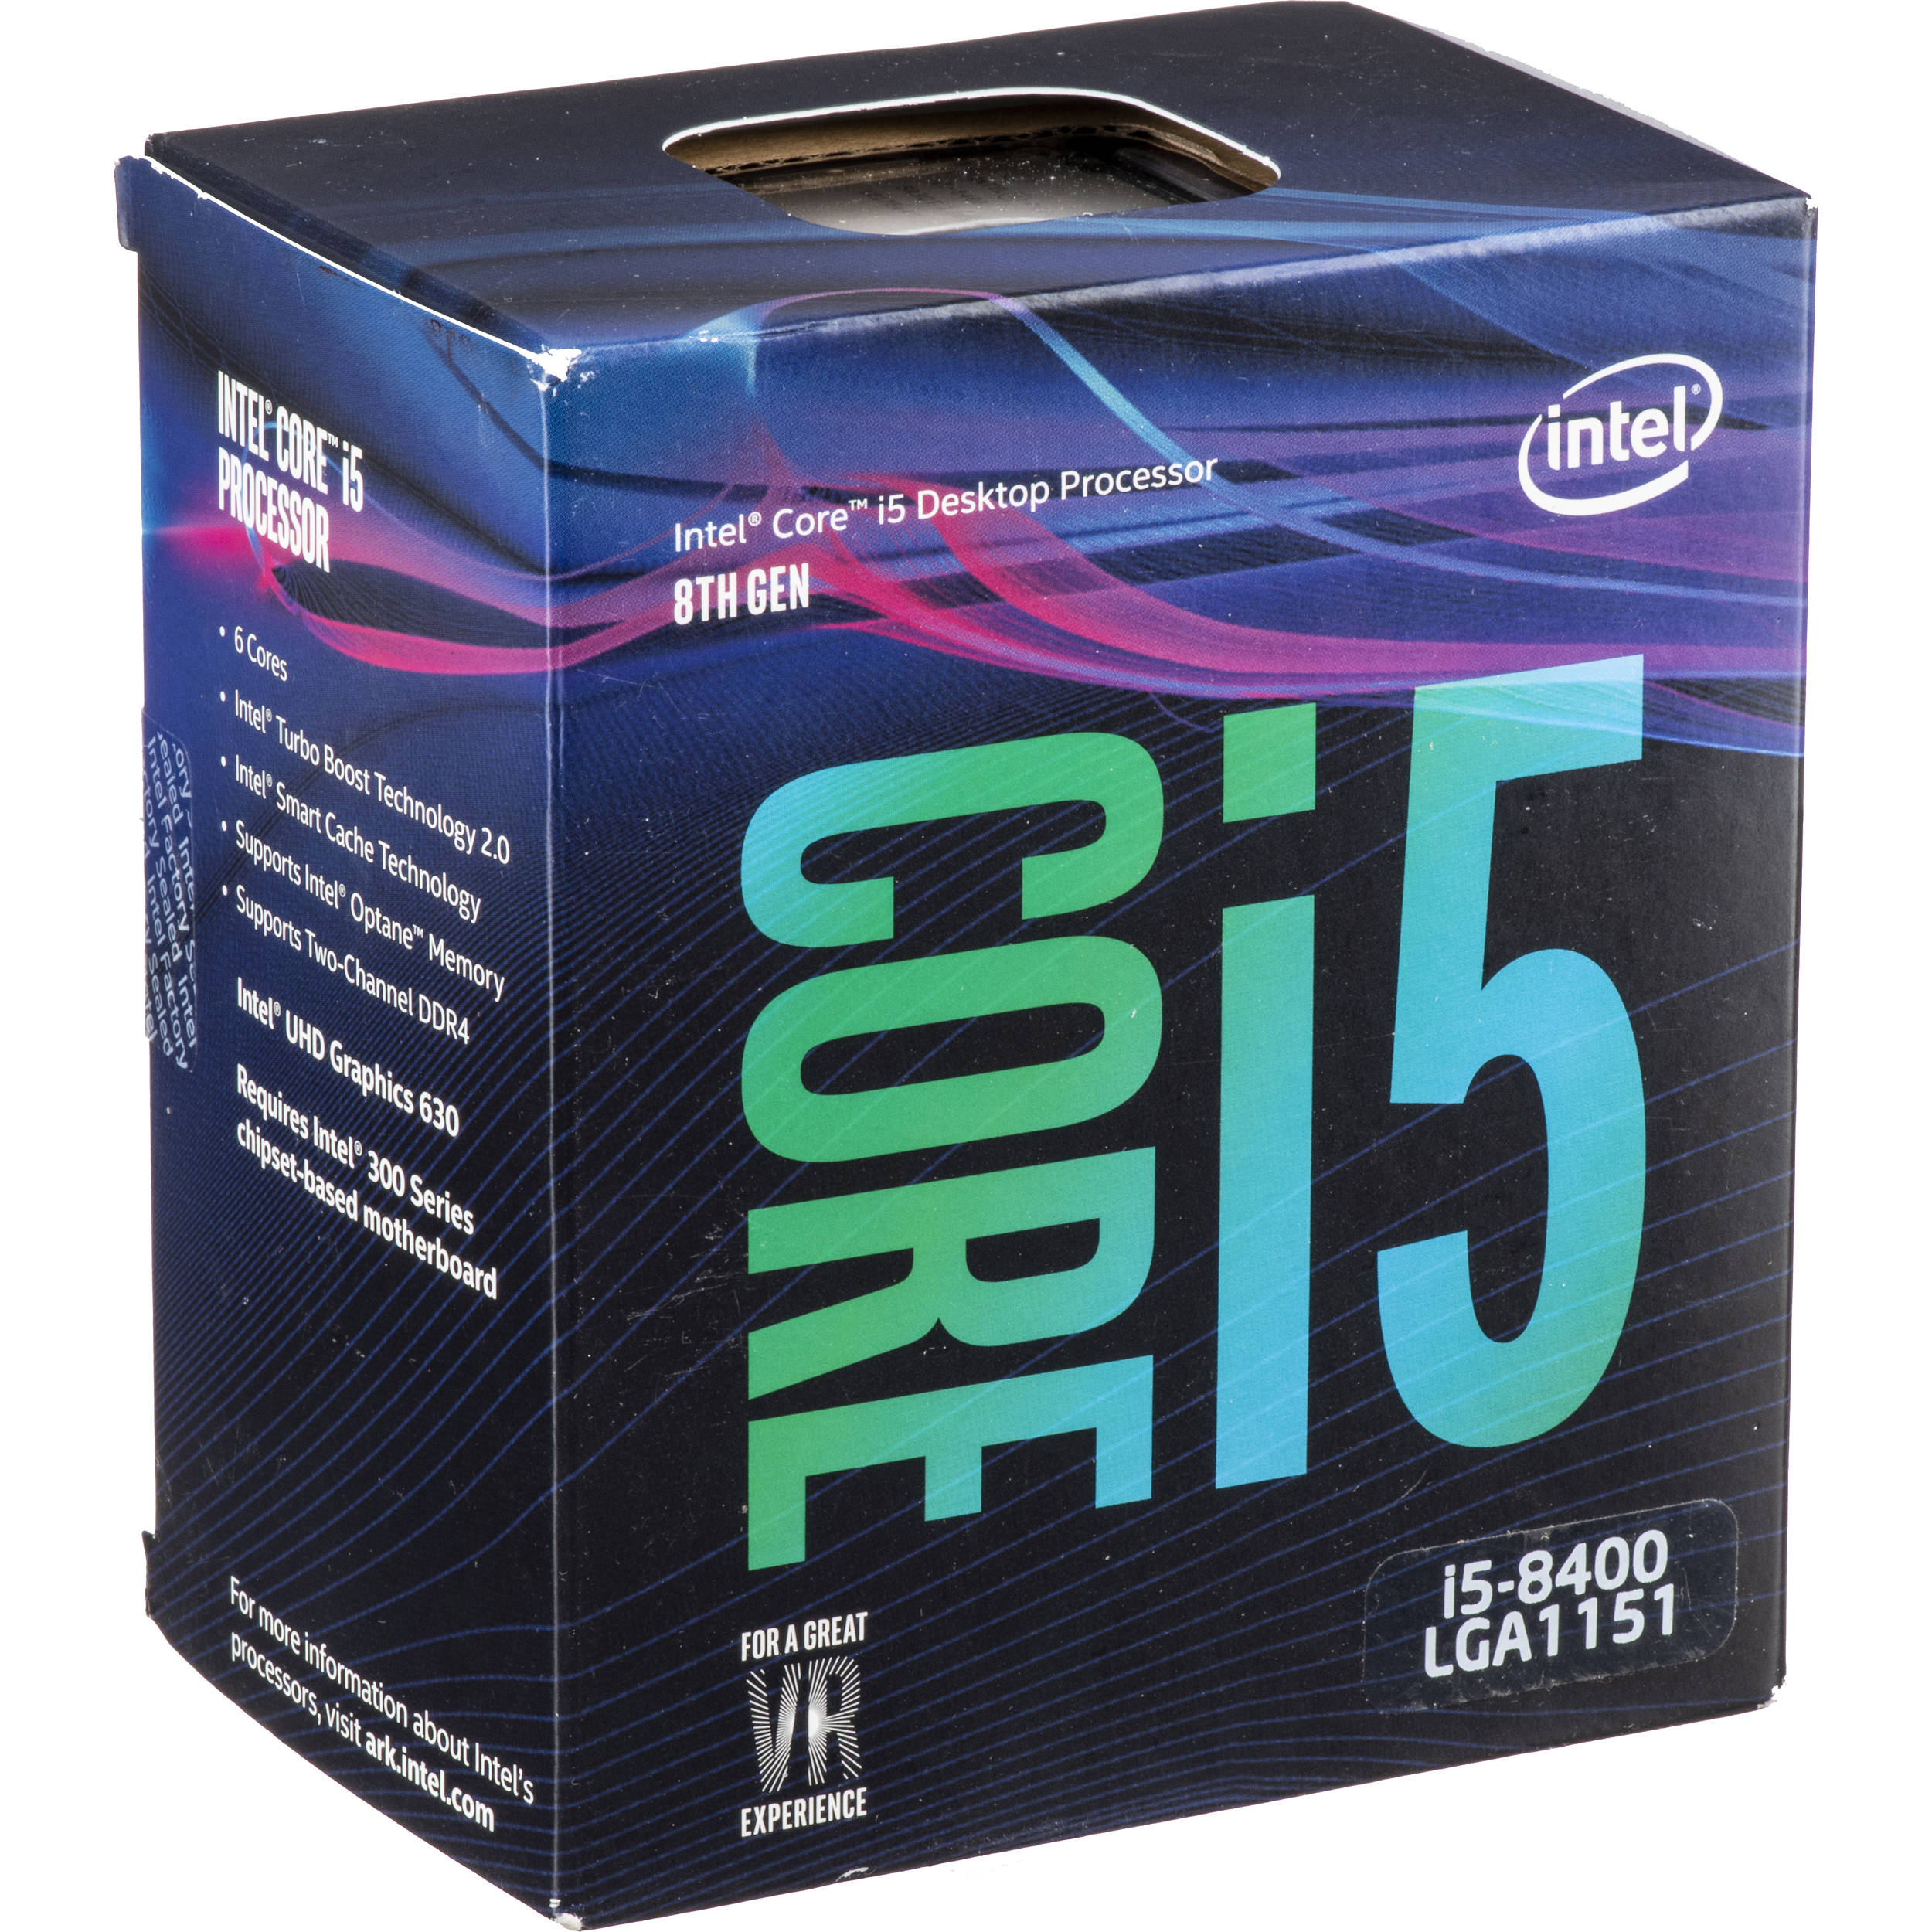 Image result for Intel Core i5-8400